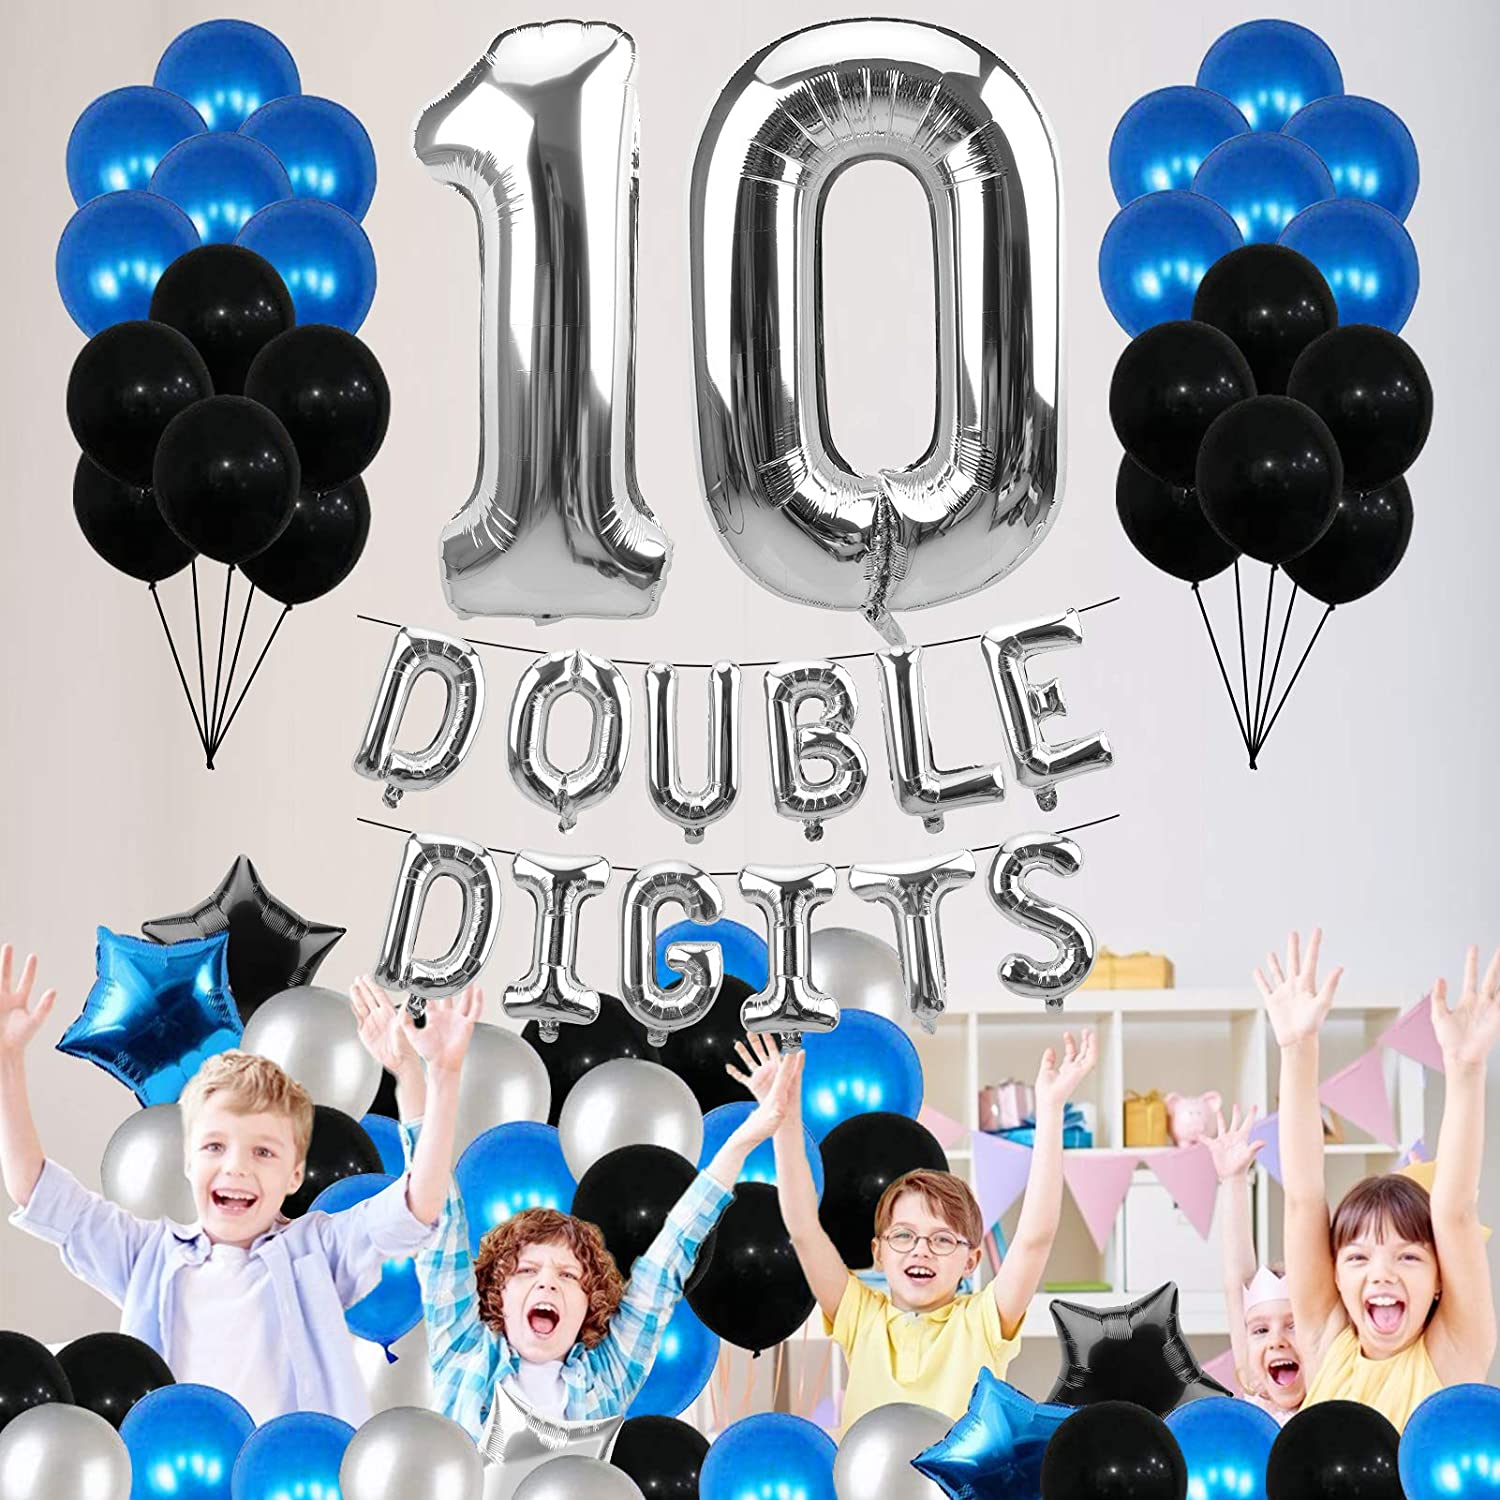 Happy 10th Birthday Party Supplies Luxiocio Double Digits 10 Birthday Balloon Decorations Kit Double Digits Balloon Banner with Large Number 10 Balloons 6Pcs Star Foil 8Pcs Latex Balloons